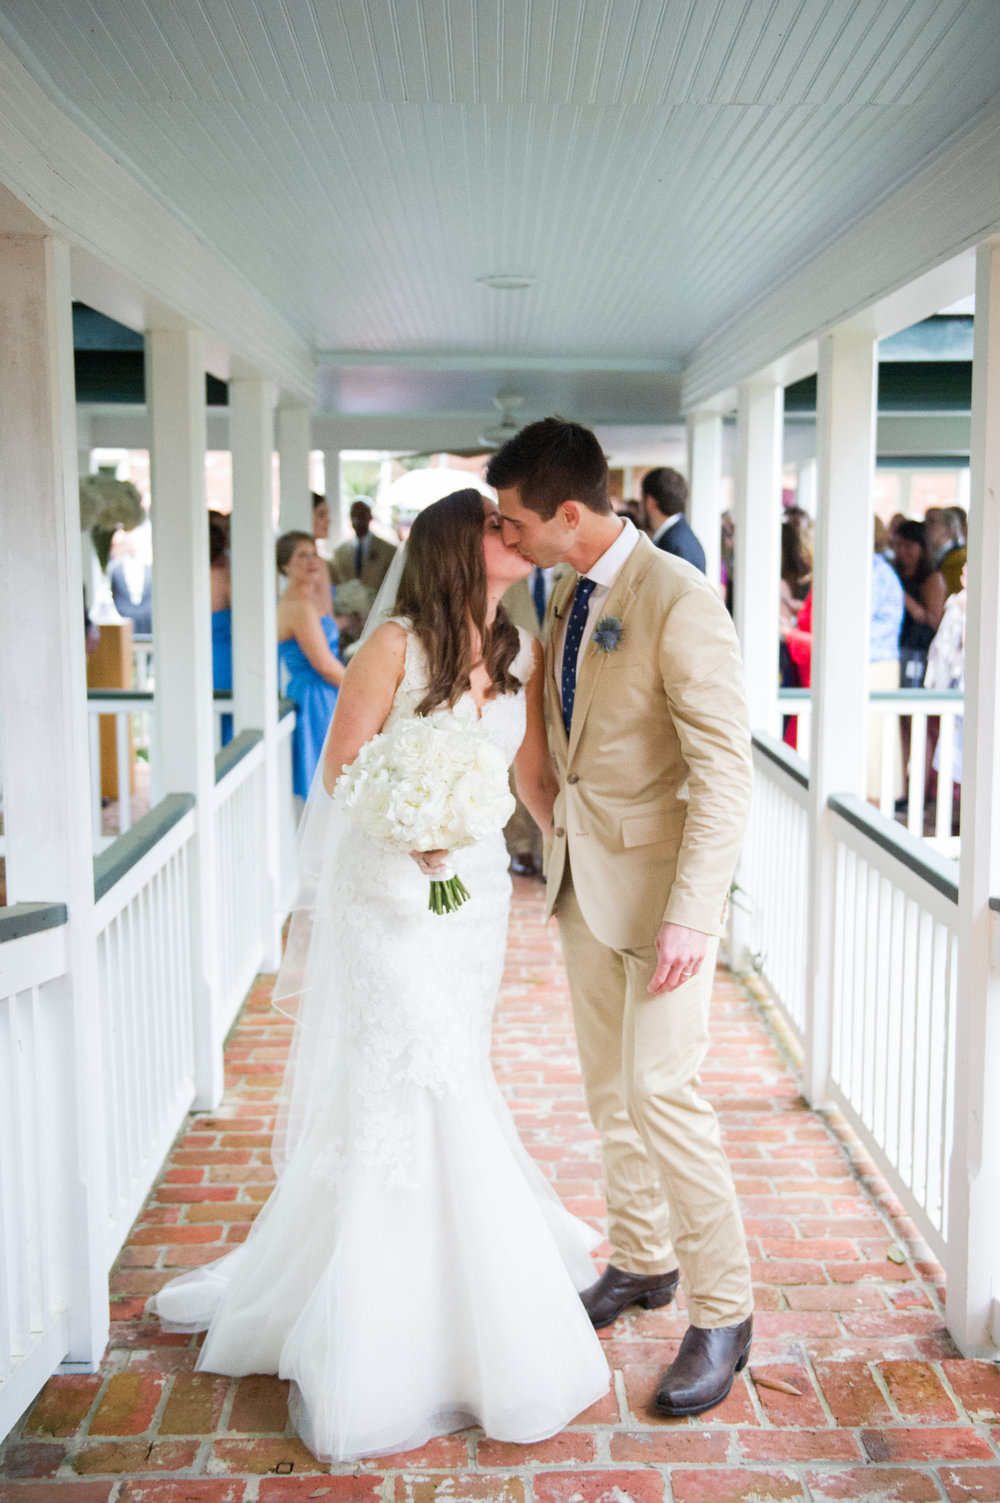 Sapphire Events | Catherine Guidry Photography | Wedding Planning | New Orleans Wedding | Stella Plantation Wedding | Blue and White Wedding | Classic Rainy Day Wedding | Outdoor Wedding | Tent Wedding | Hunter Boots | Blue and White Wedding Details